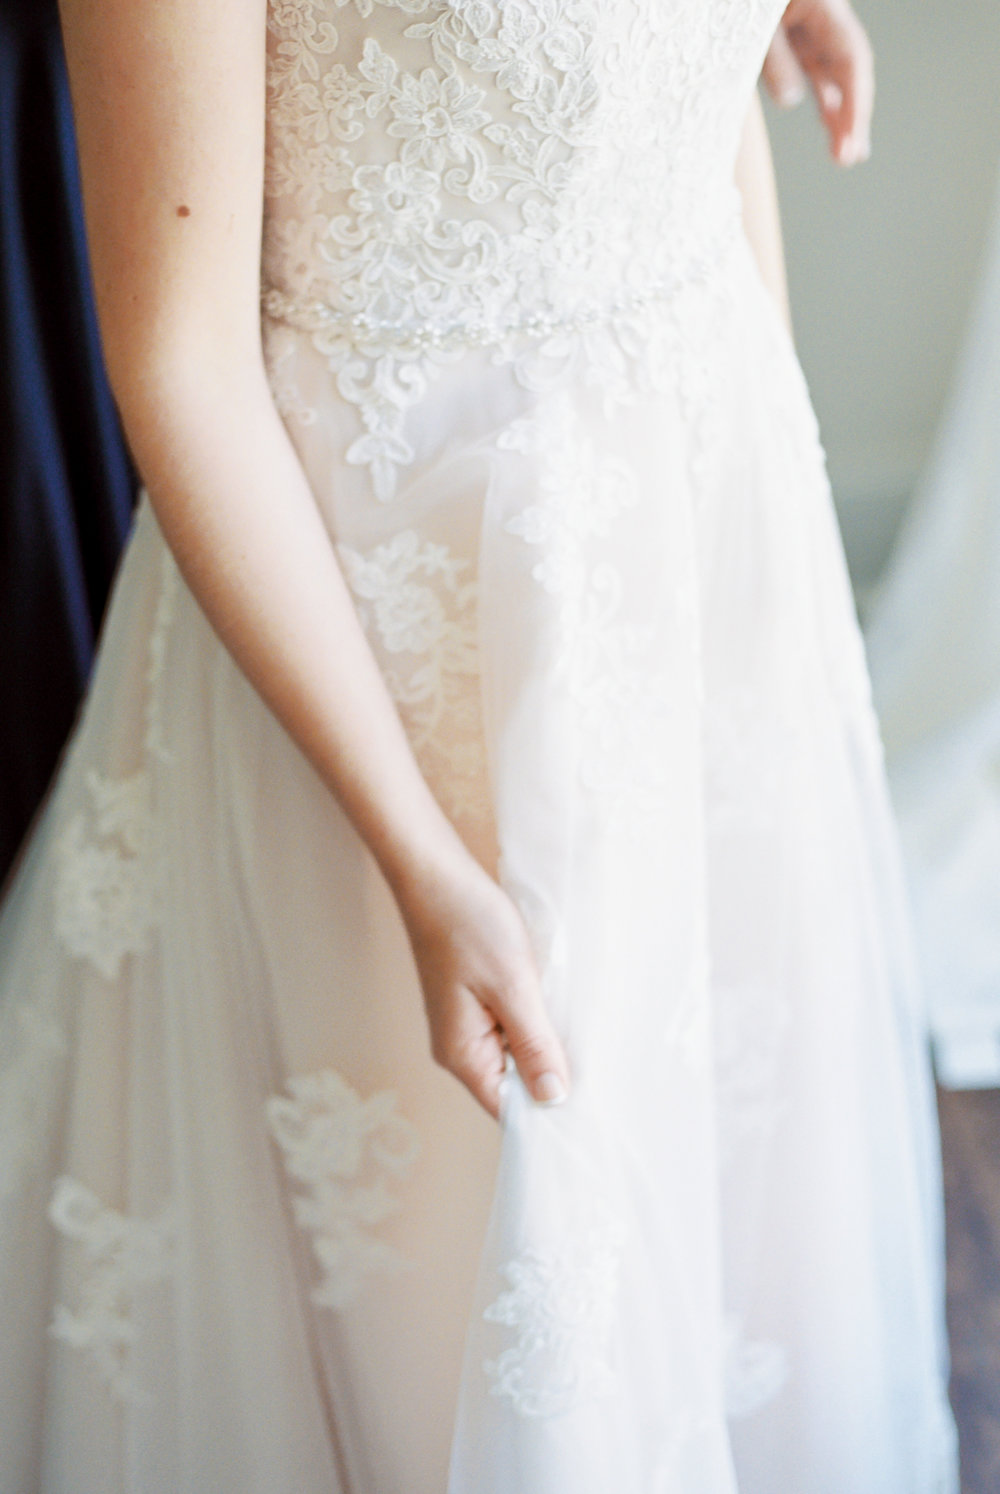 lace detail on dress